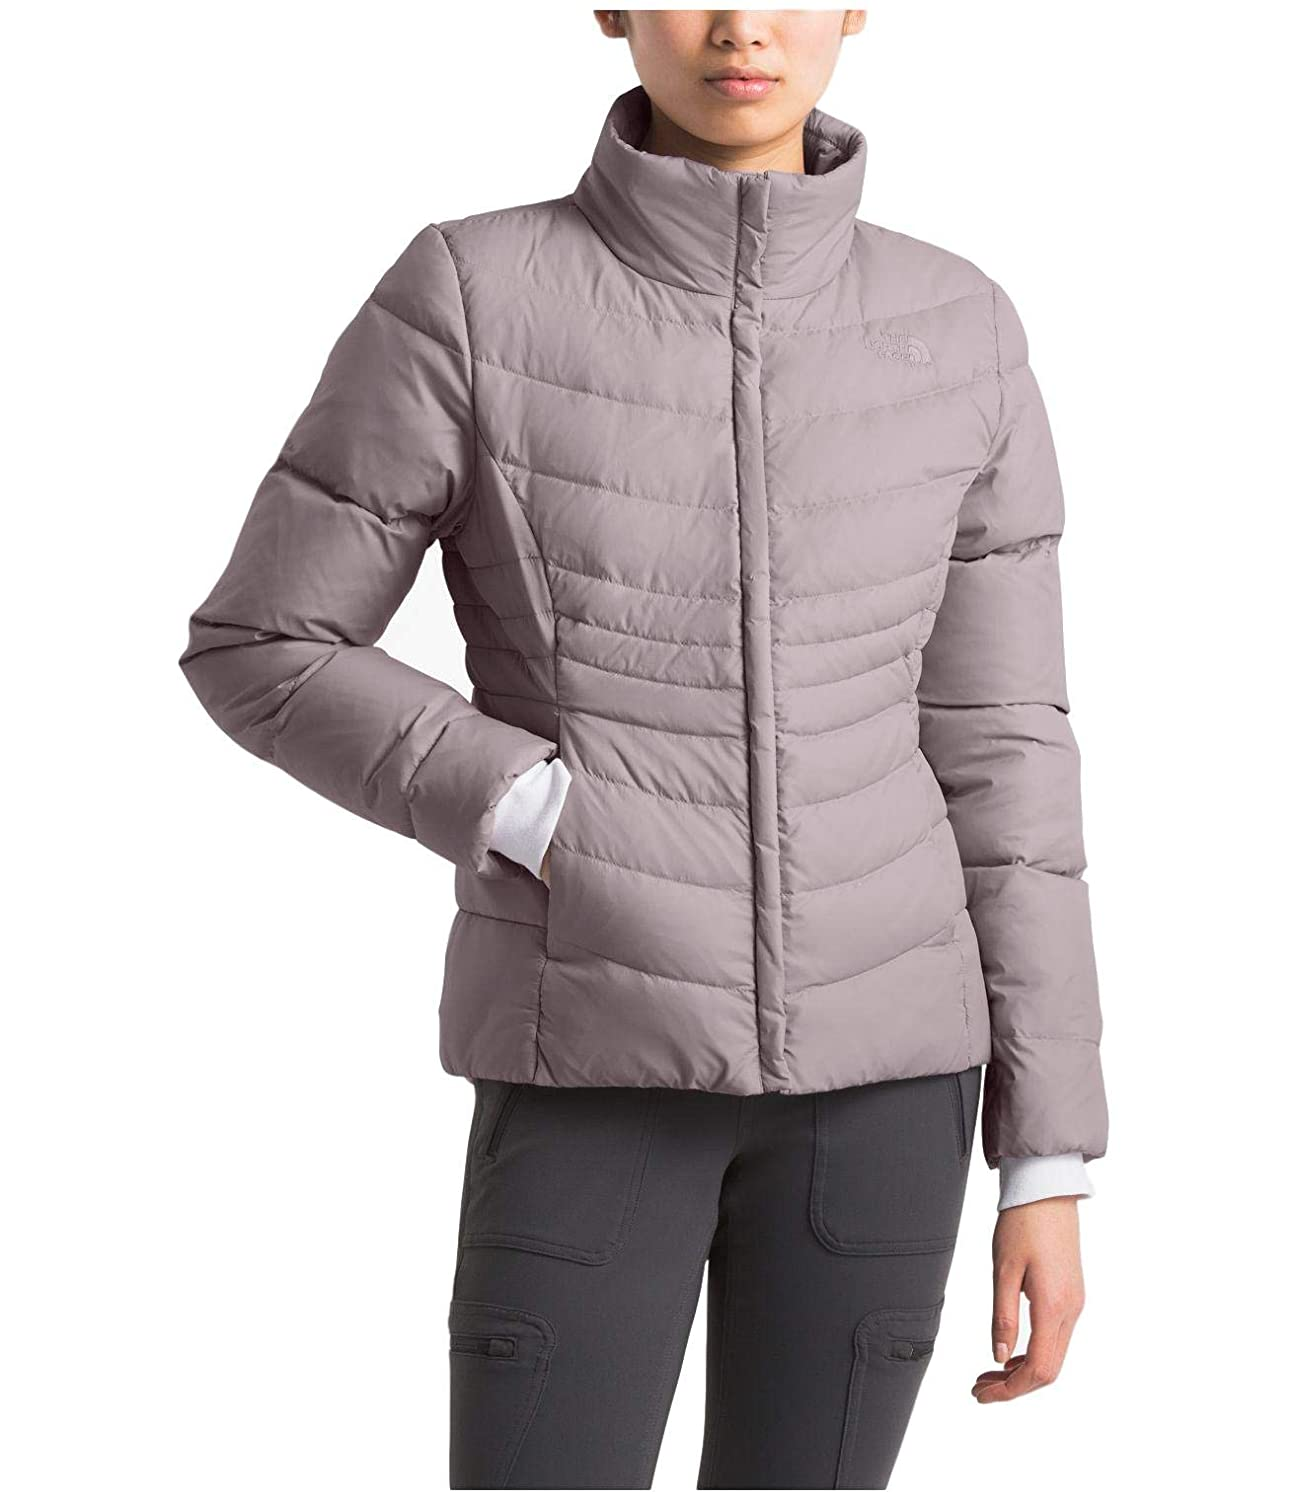 caaed240f The North Face Women's Aconcagua Jacket II